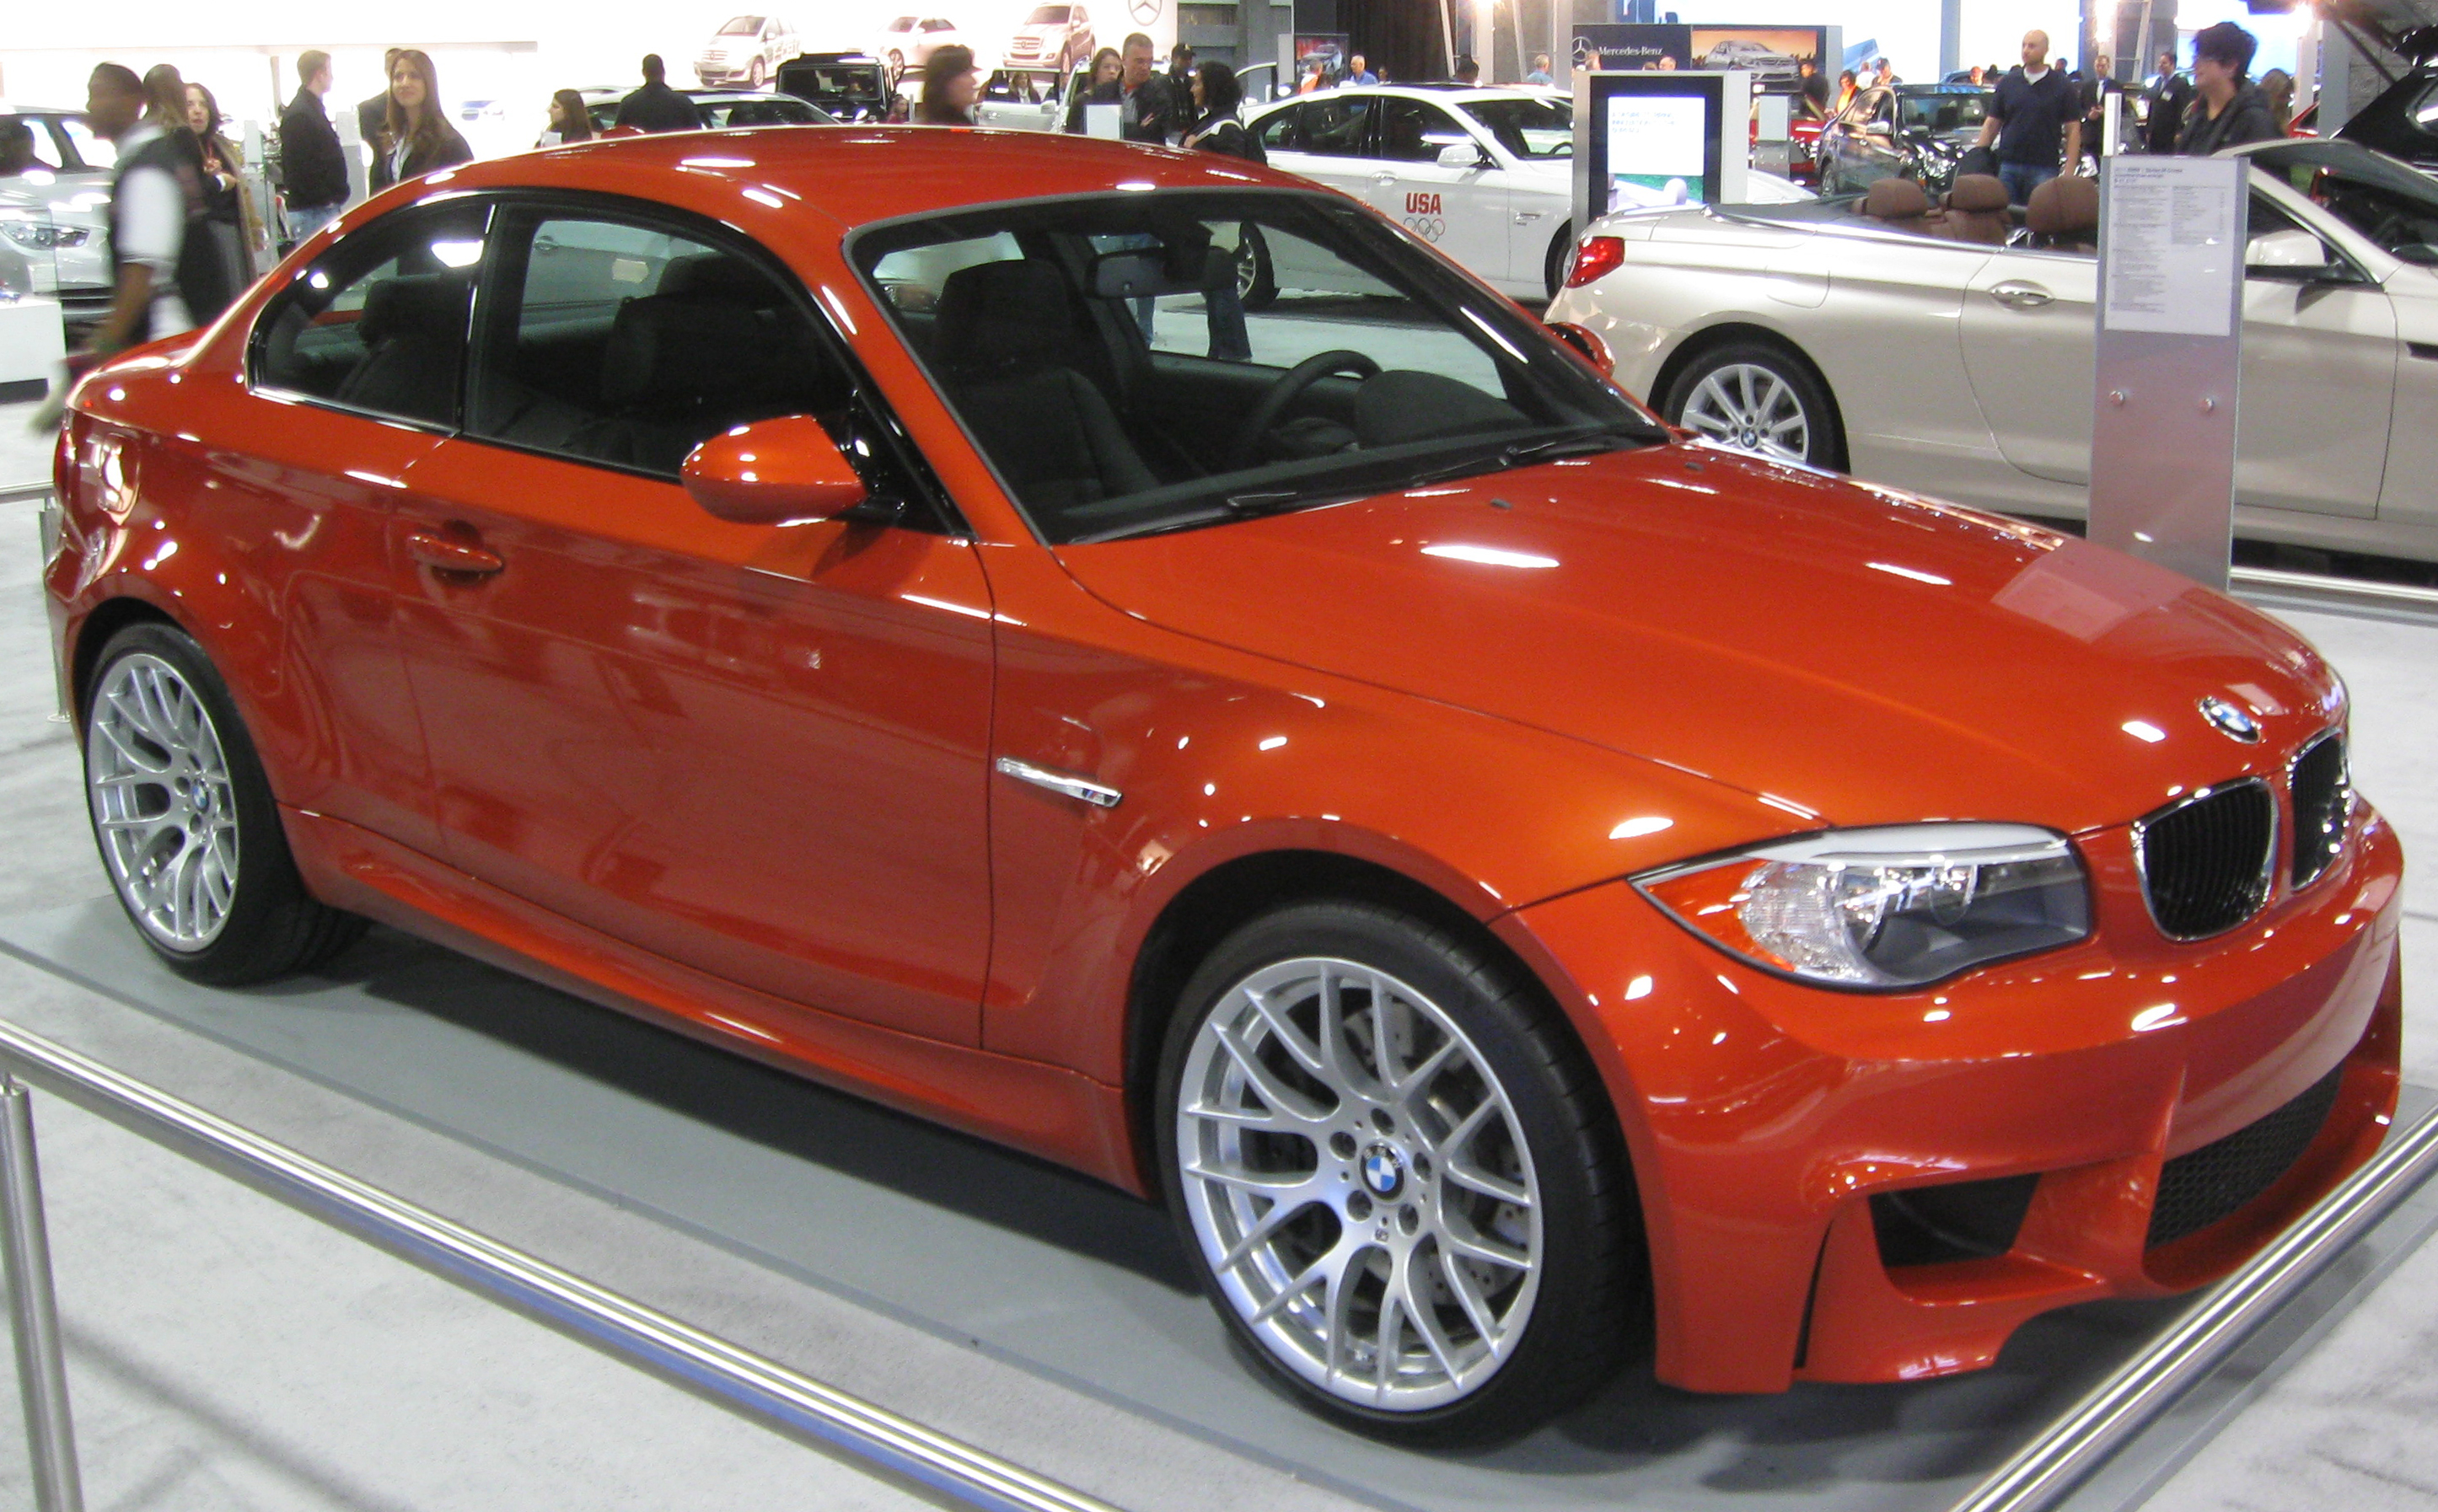 bmw 1er m coupe (e82) 2015 models